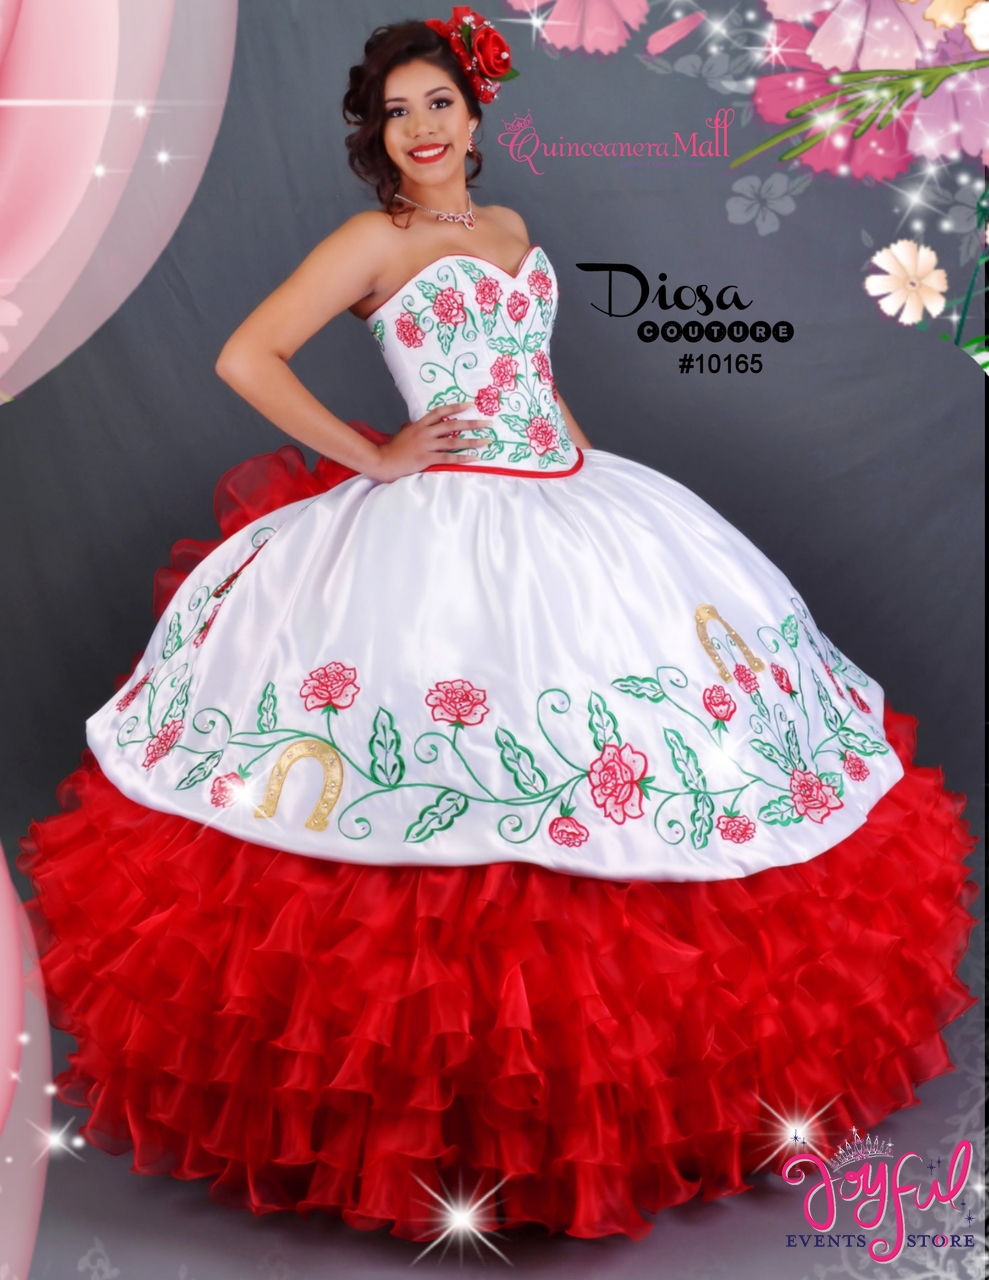 Charra Dress with Red Roses 10165